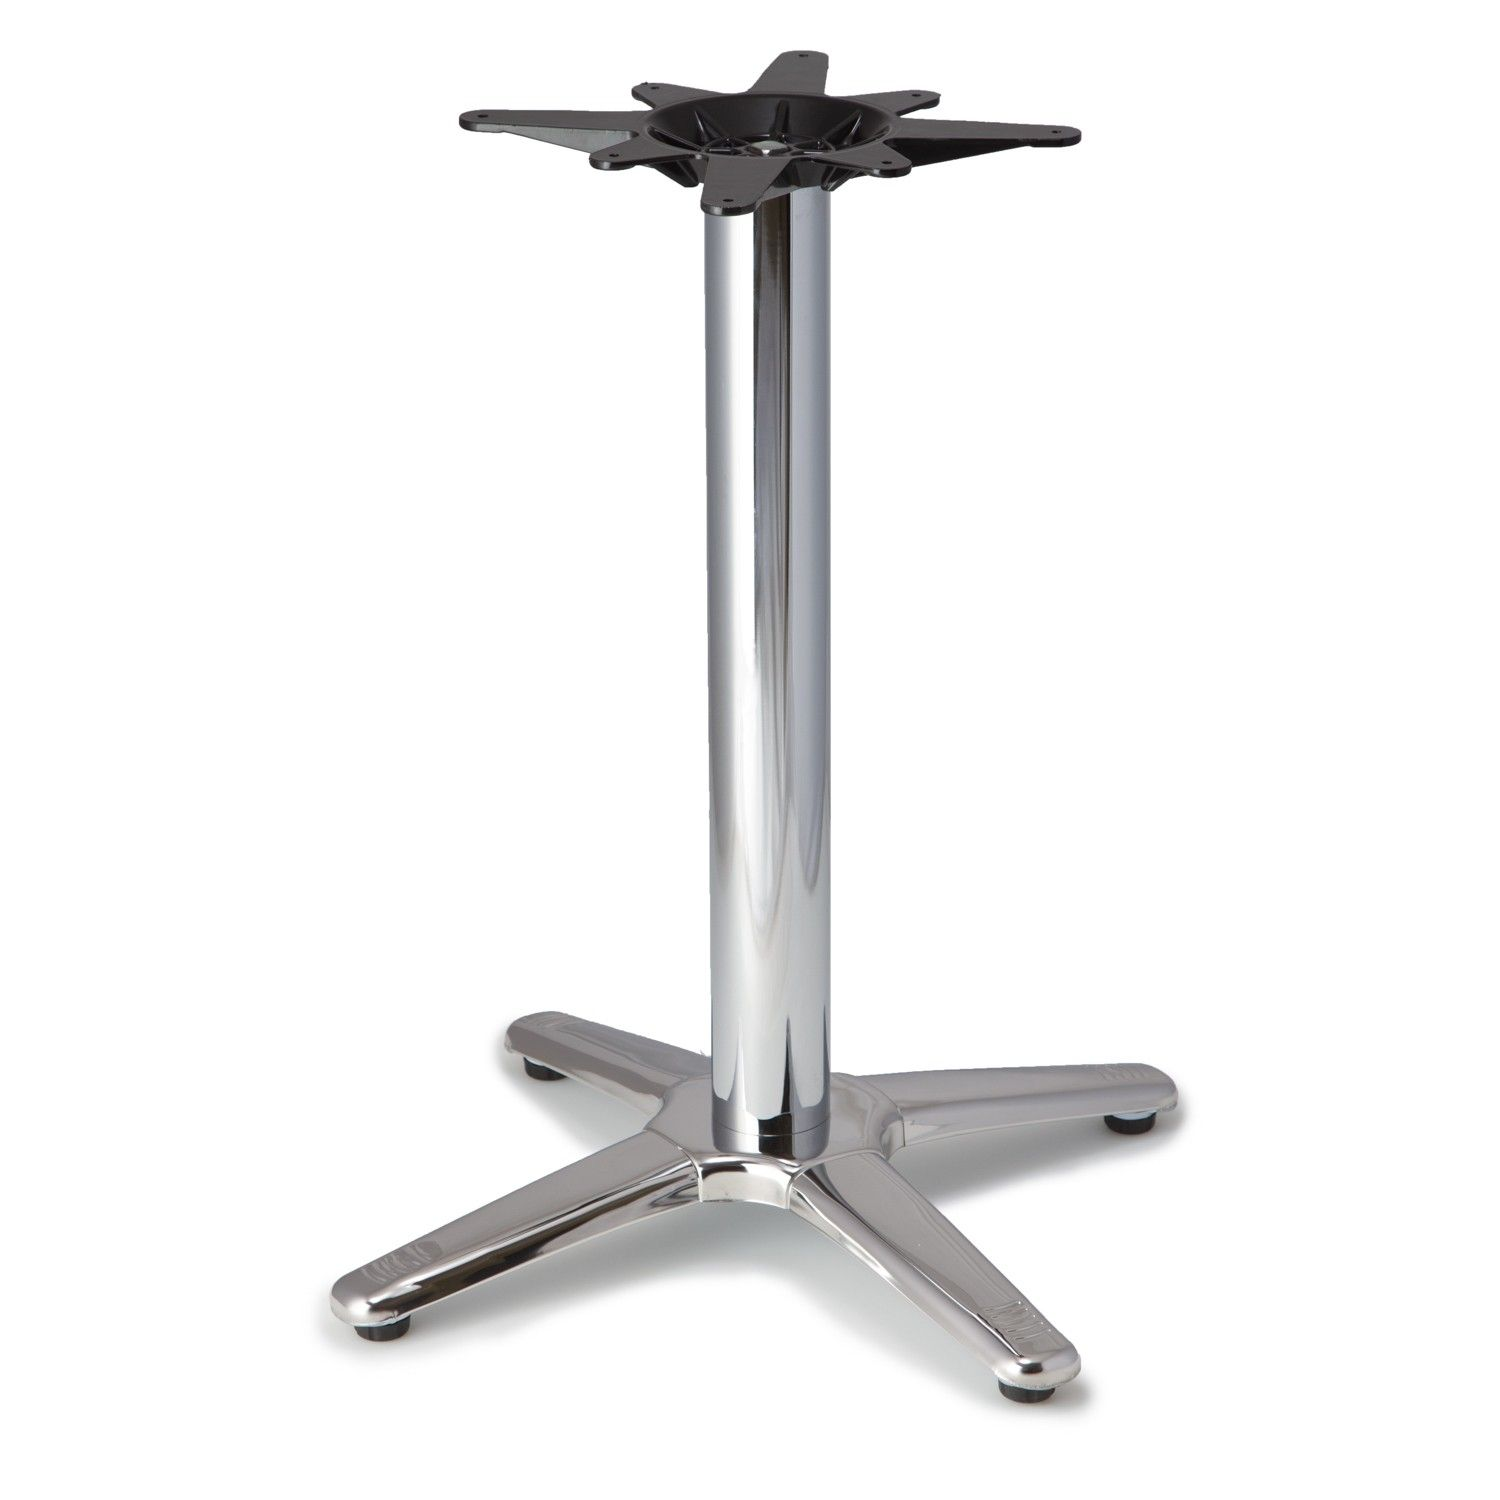 Patio 4 Aluminum Table Base The Series Bases Are A Great Choice Wherever You Need Stylish And Sy Outdoor Rated